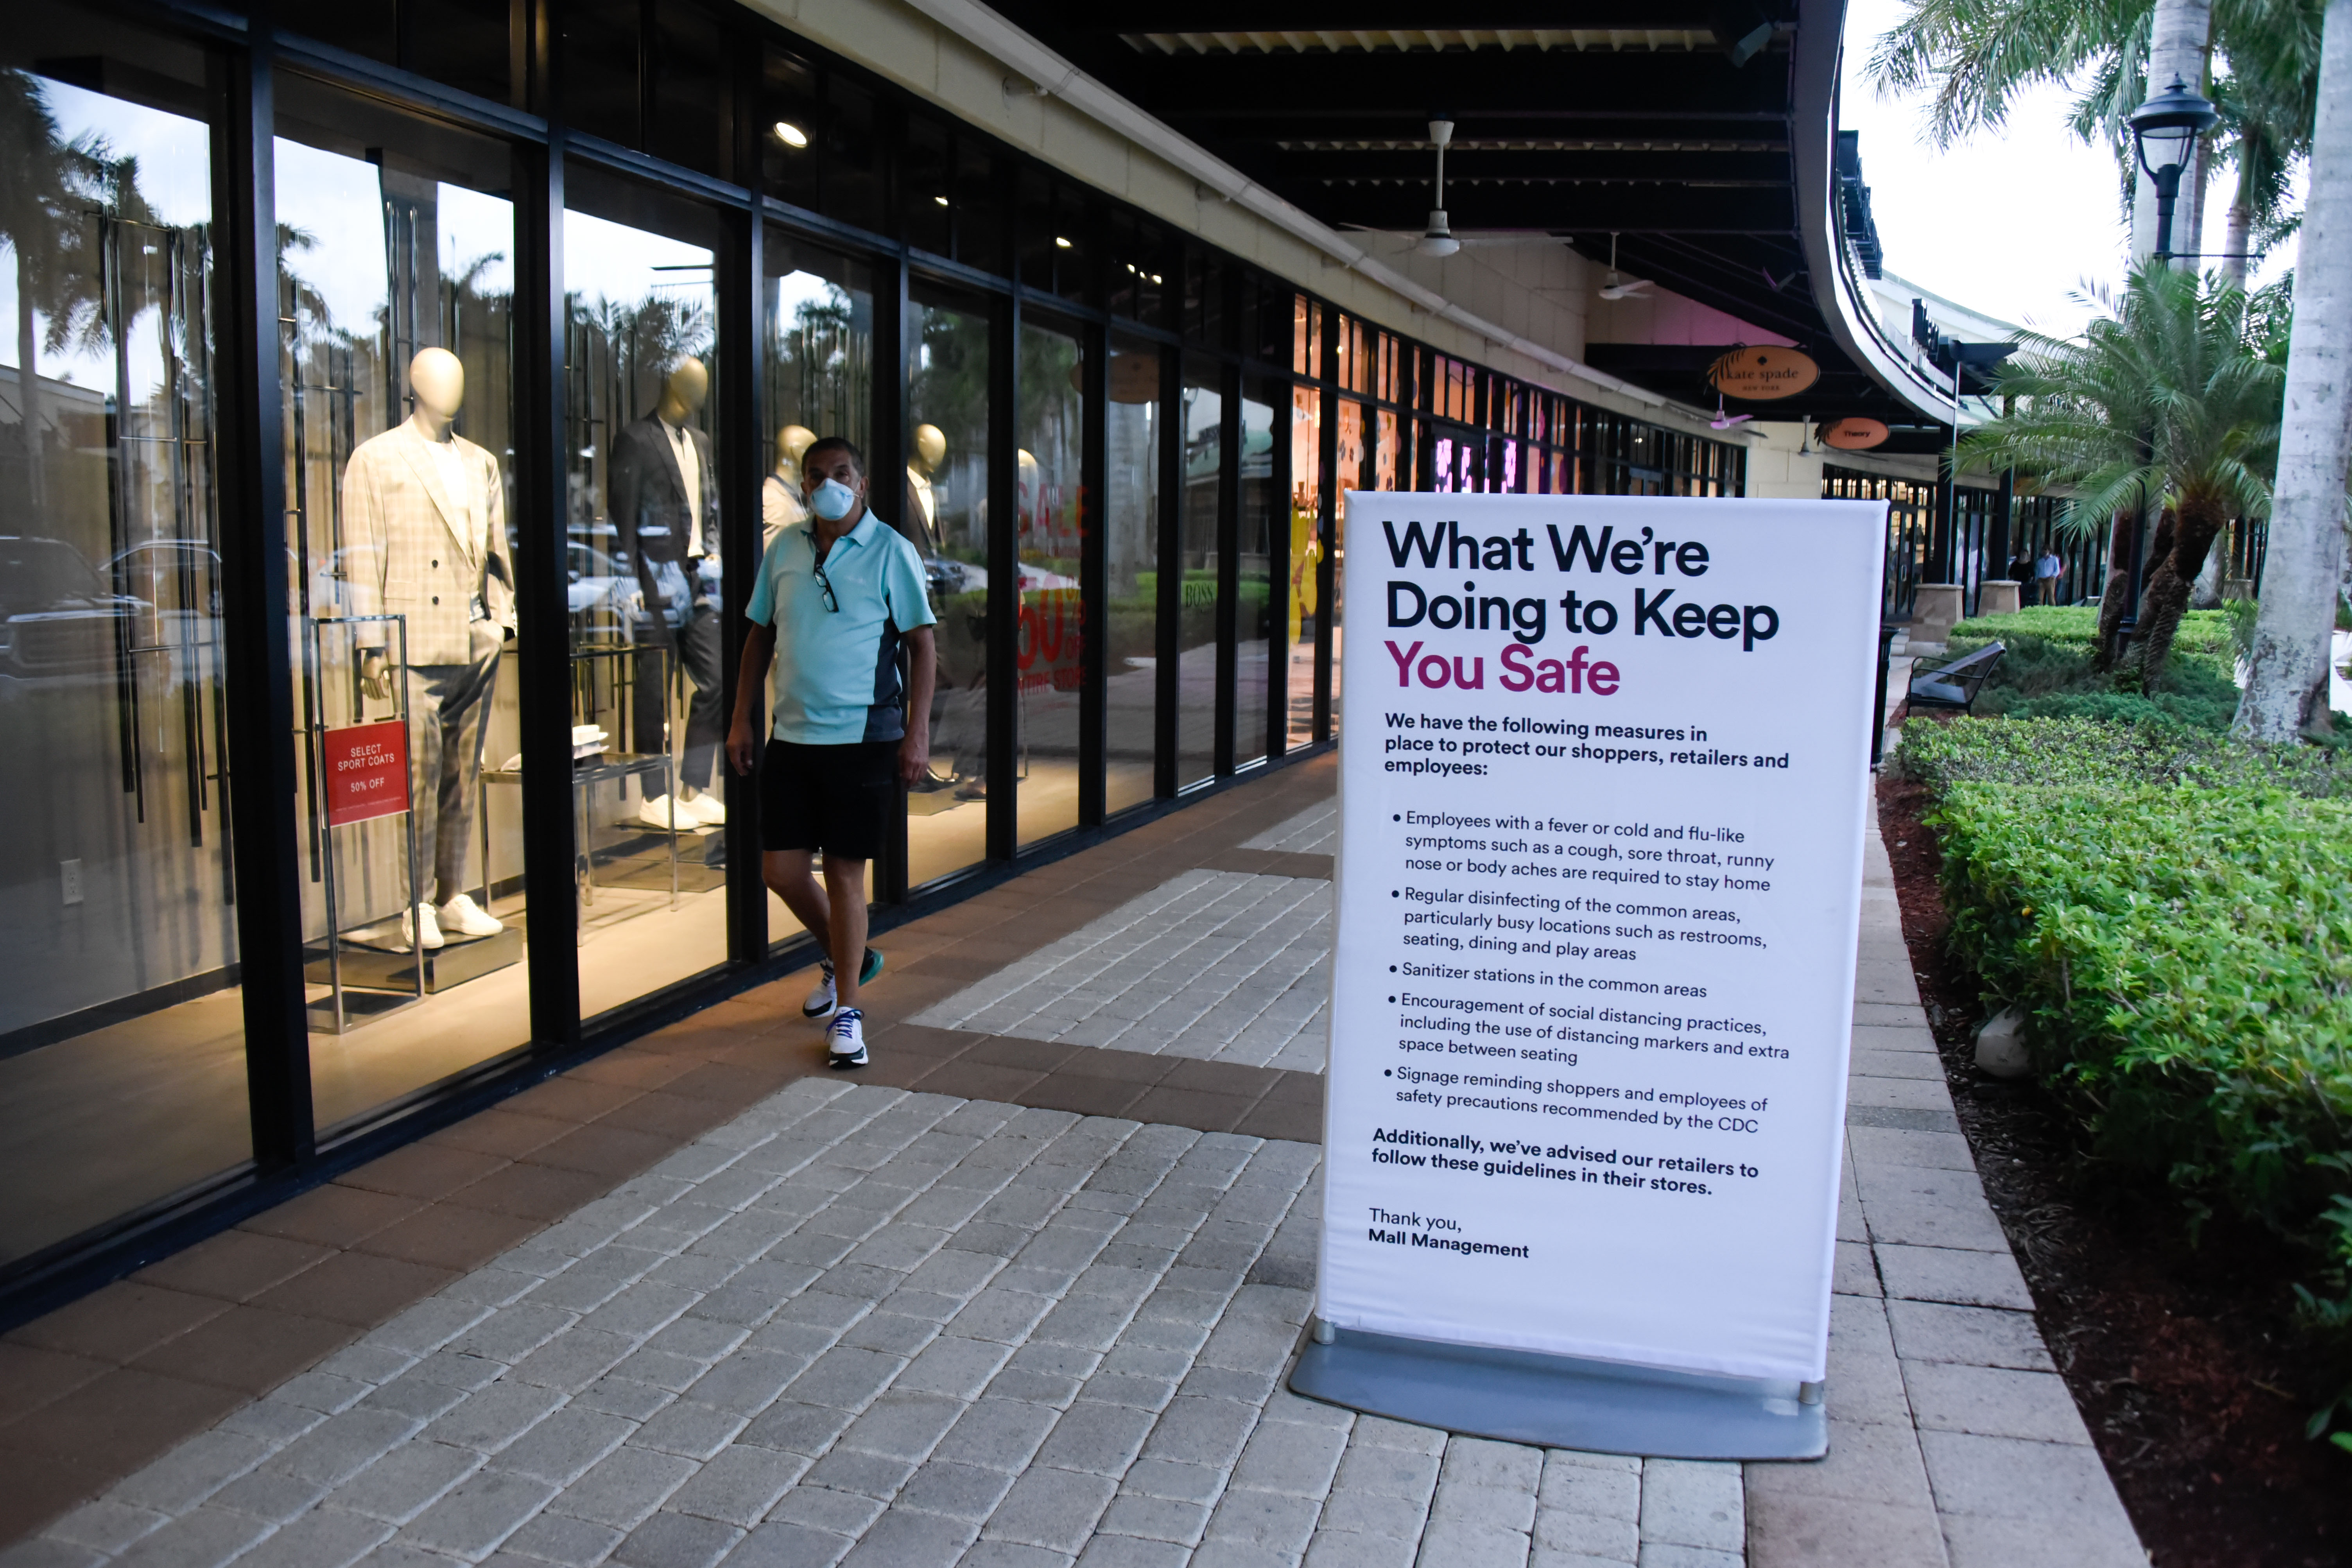 shopper in mask at mall coronavirus signrecautions in place as Phase 1 of retail reopening begins in Broward and Dade County amid the Coronavirus outbreakCoronavirus outbreak business reopening, Sunrise, Florida, USA - 18 May 2020